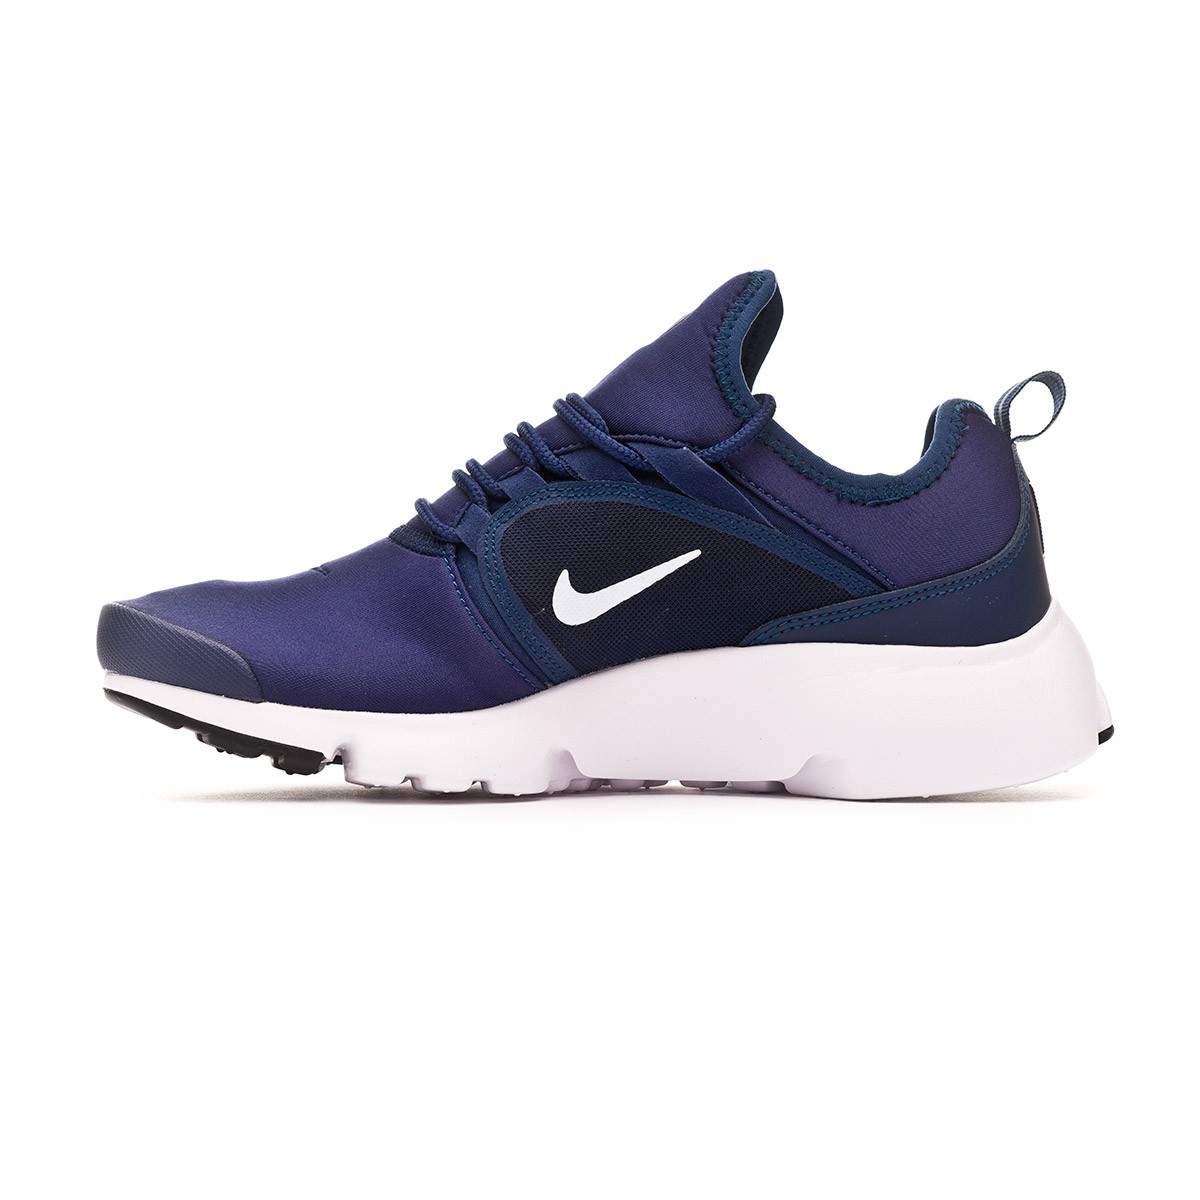 varios colores 721ad a3fed Nike Presto Fly World 2019 Trainers